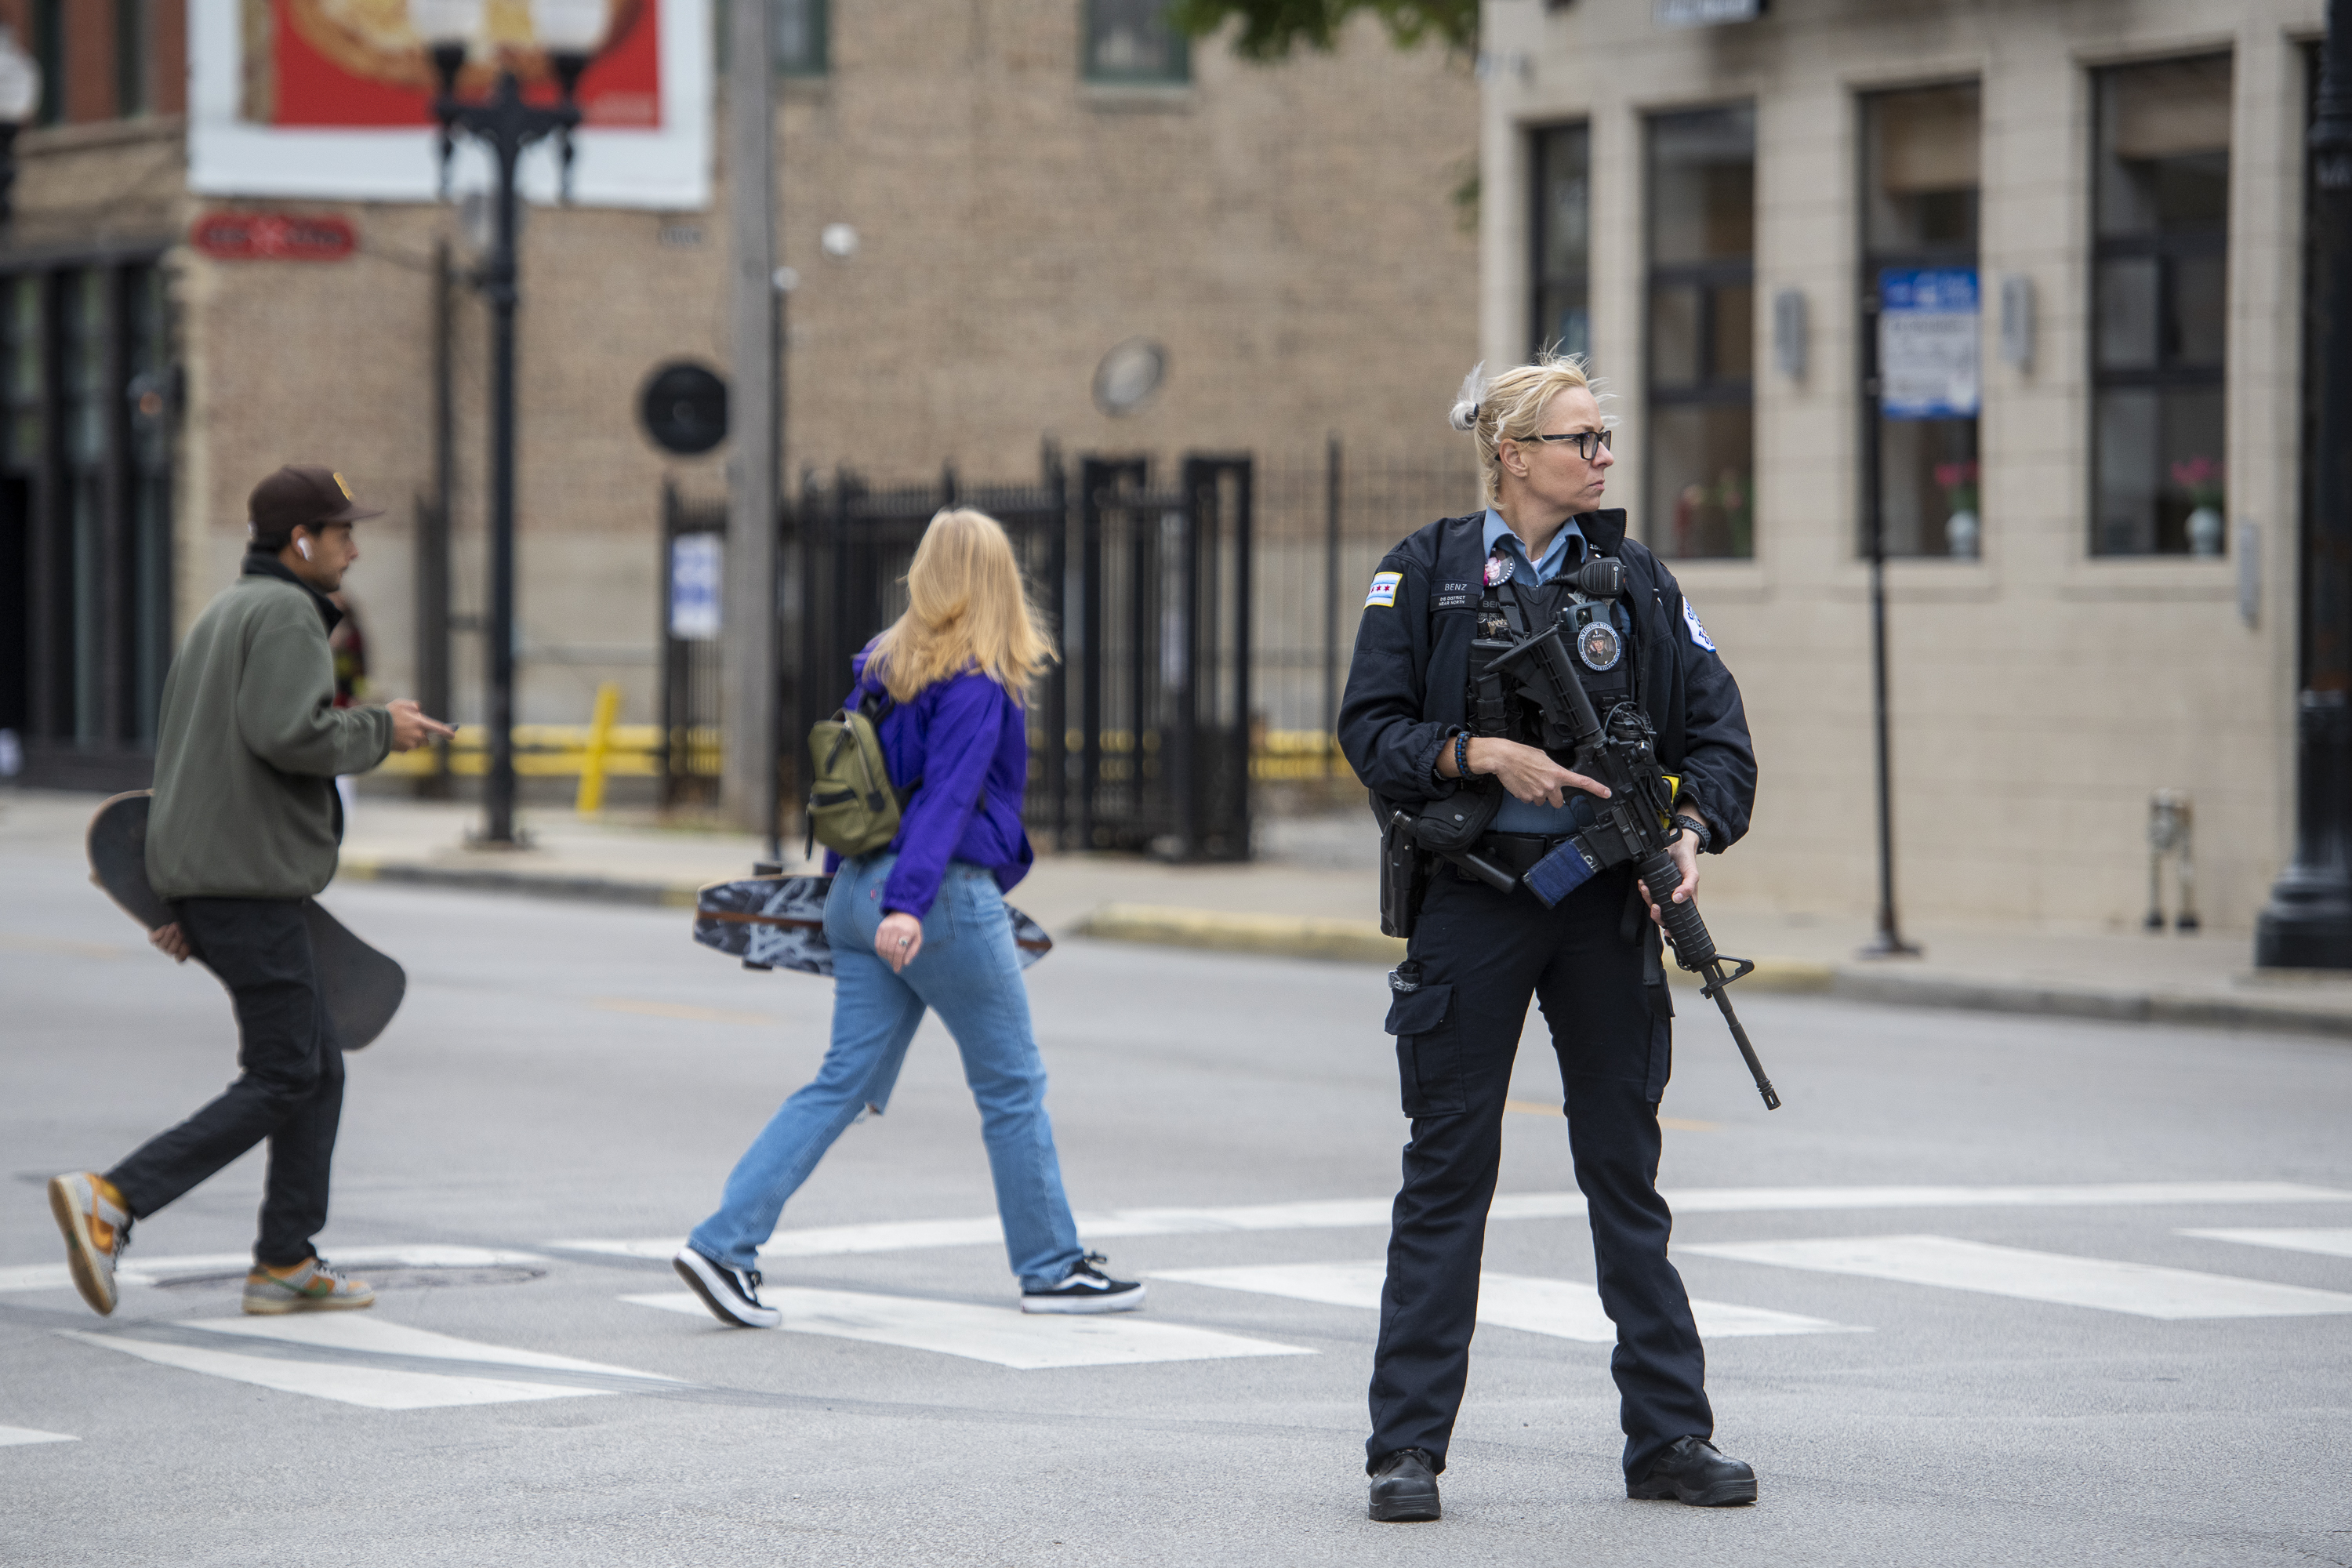 A Chicago police officer with a rifle helps direct traffic after a SWAT incident in the 200 block of West Division Street, in the Old Town neighborhood, Wednesday, Sept. 22, 2021. The initial call that prompted the SWAT response was found to be fake.